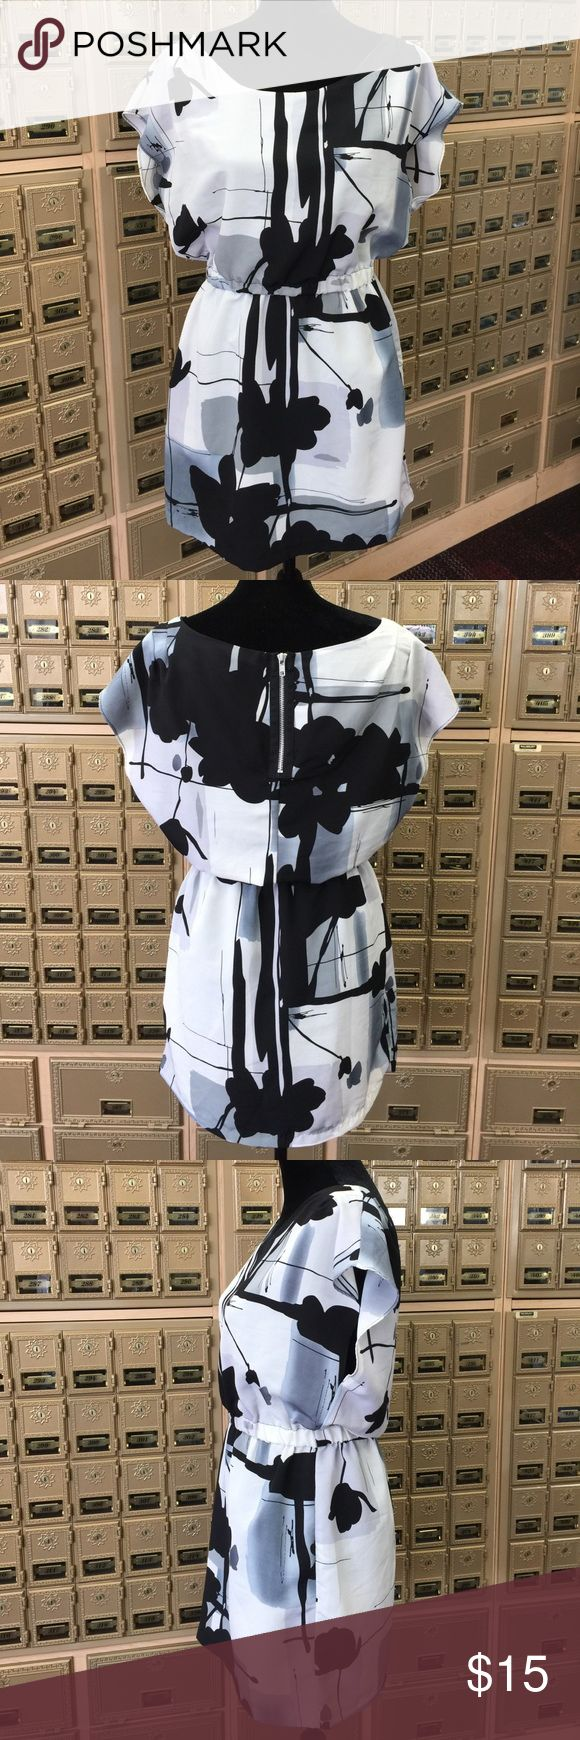 Forever Twenty One Mini Dress Size Medium Cute used mini dress, forever twenty one black and white abstract design, elastic waist. Please see pictures for details. Bundle and save! Twenty One Dresses Mini